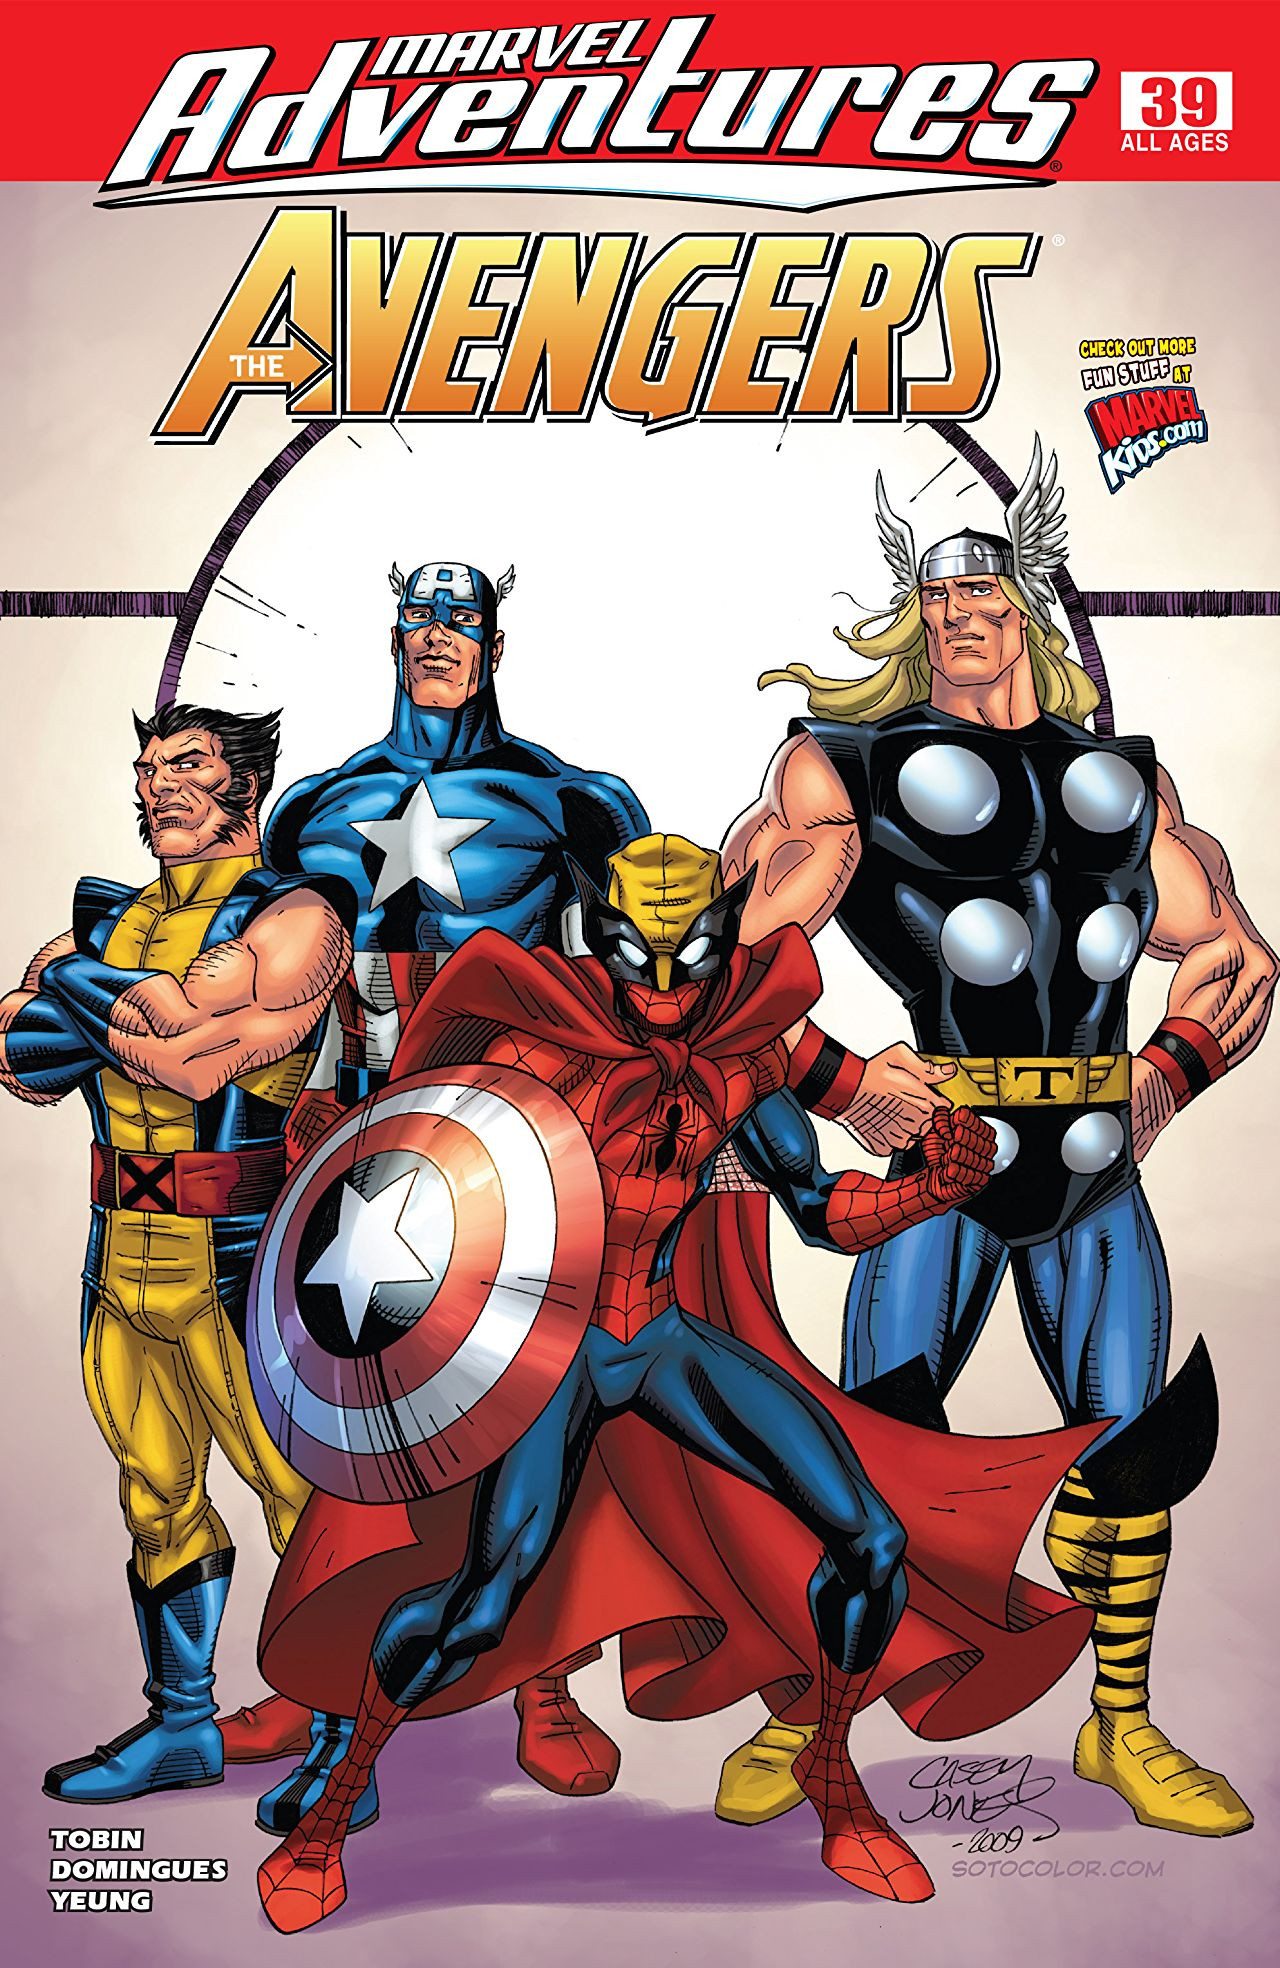 Marvel Adventures: The Avengers Vol 1 39